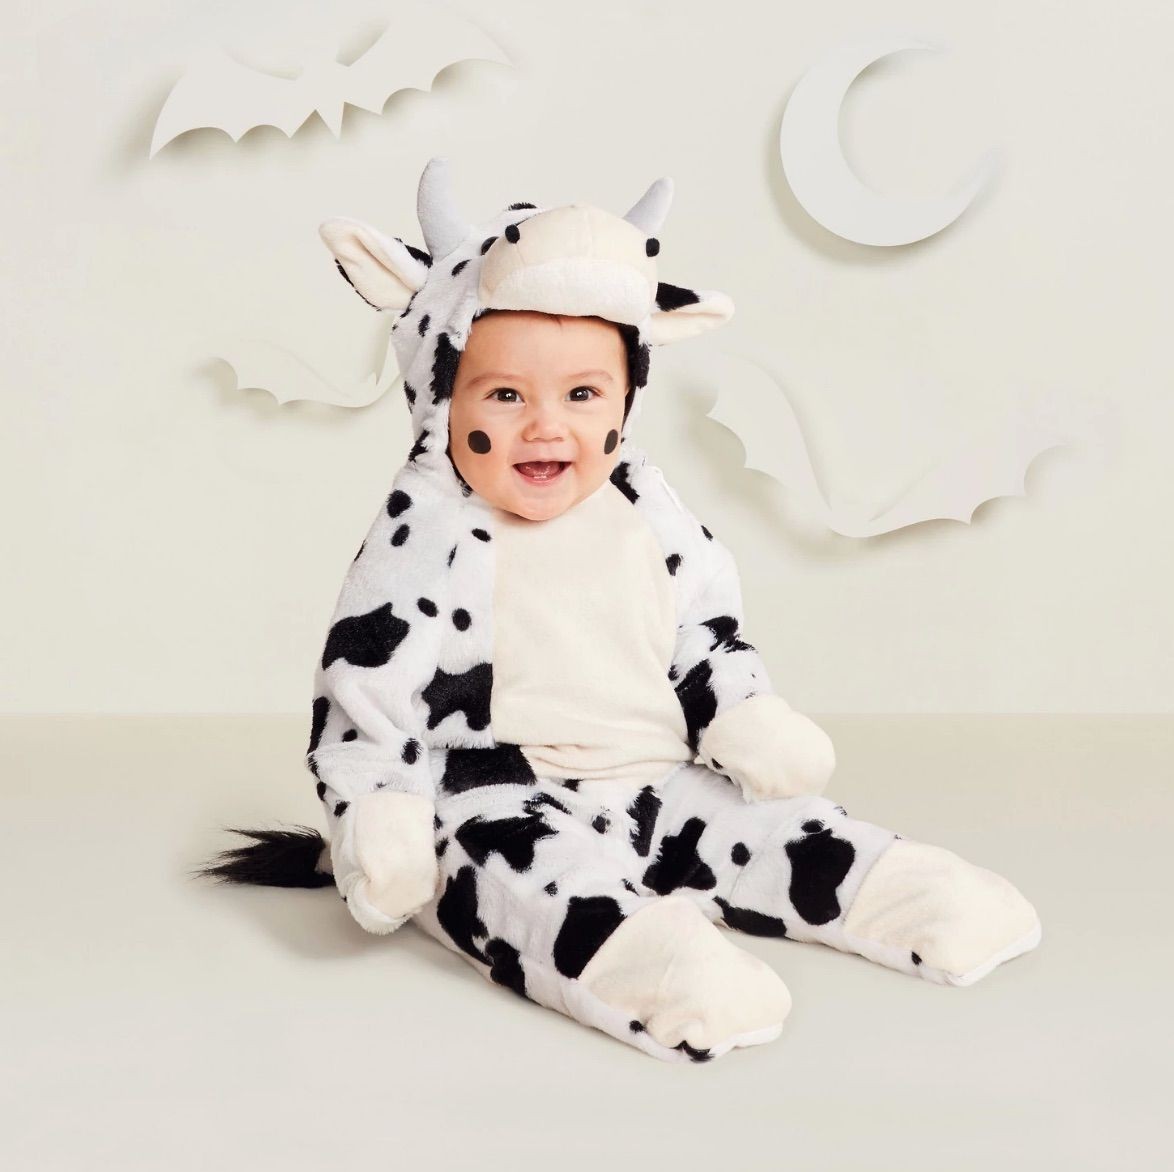 1e4d3dab6 27 Cute Baby Halloween Costumes 2018 - Best Ideas for Boy   Girl ...